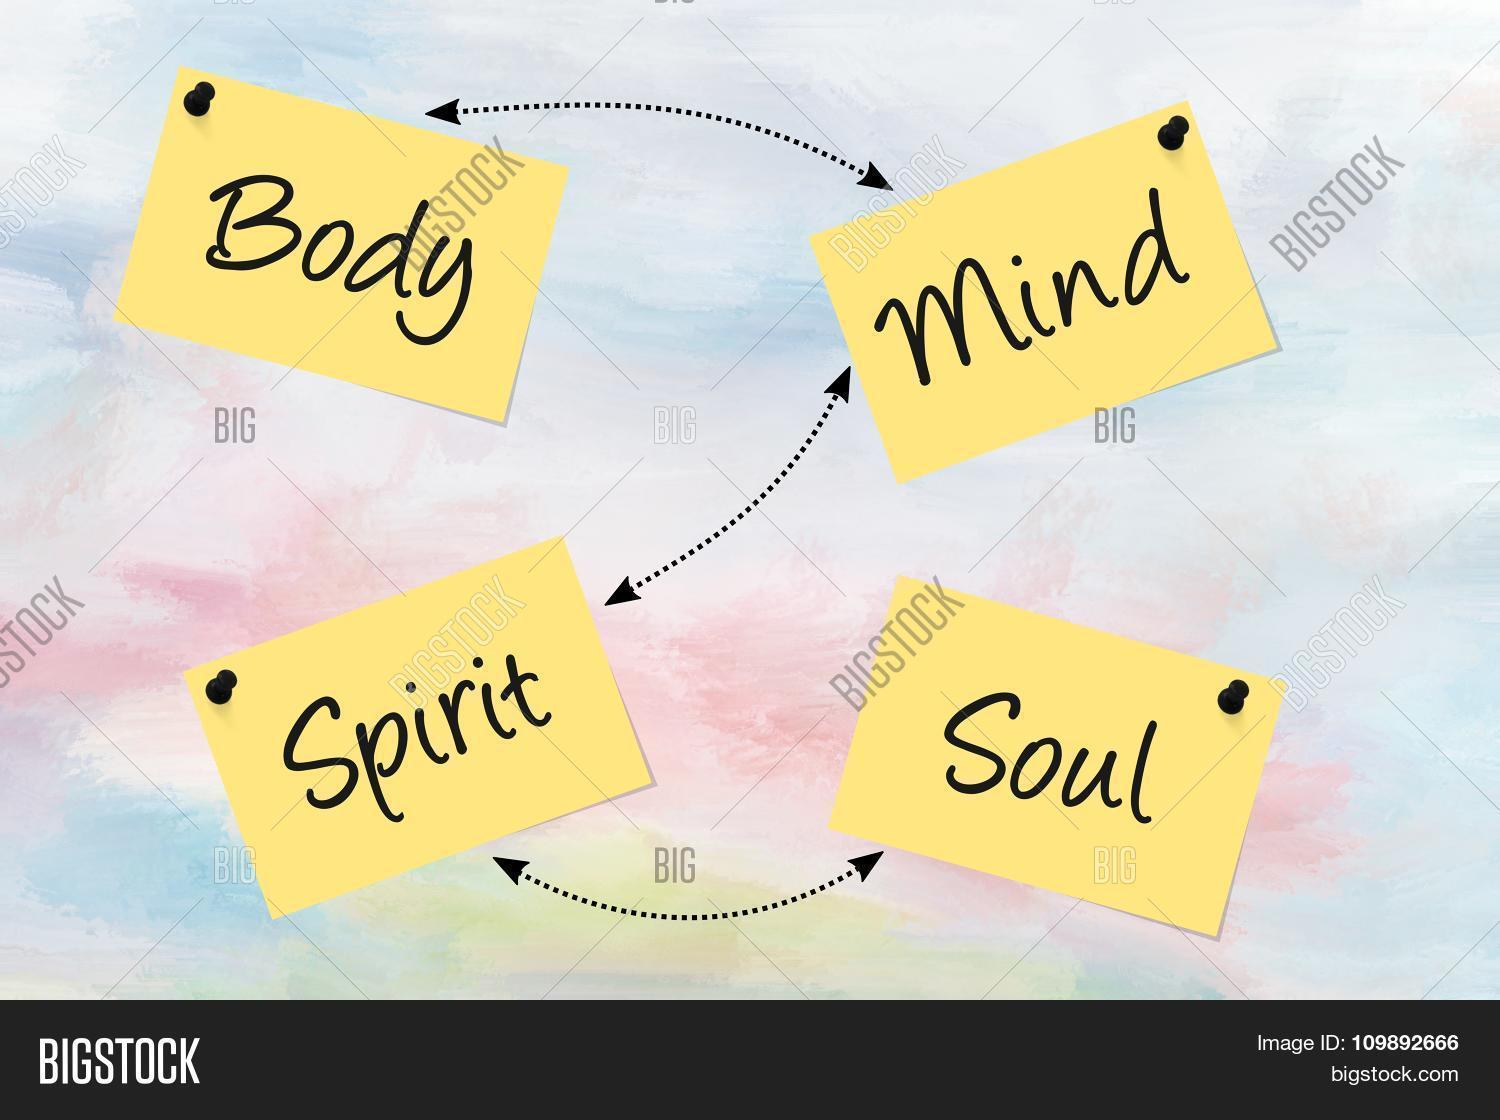 Essay on mind body and soul